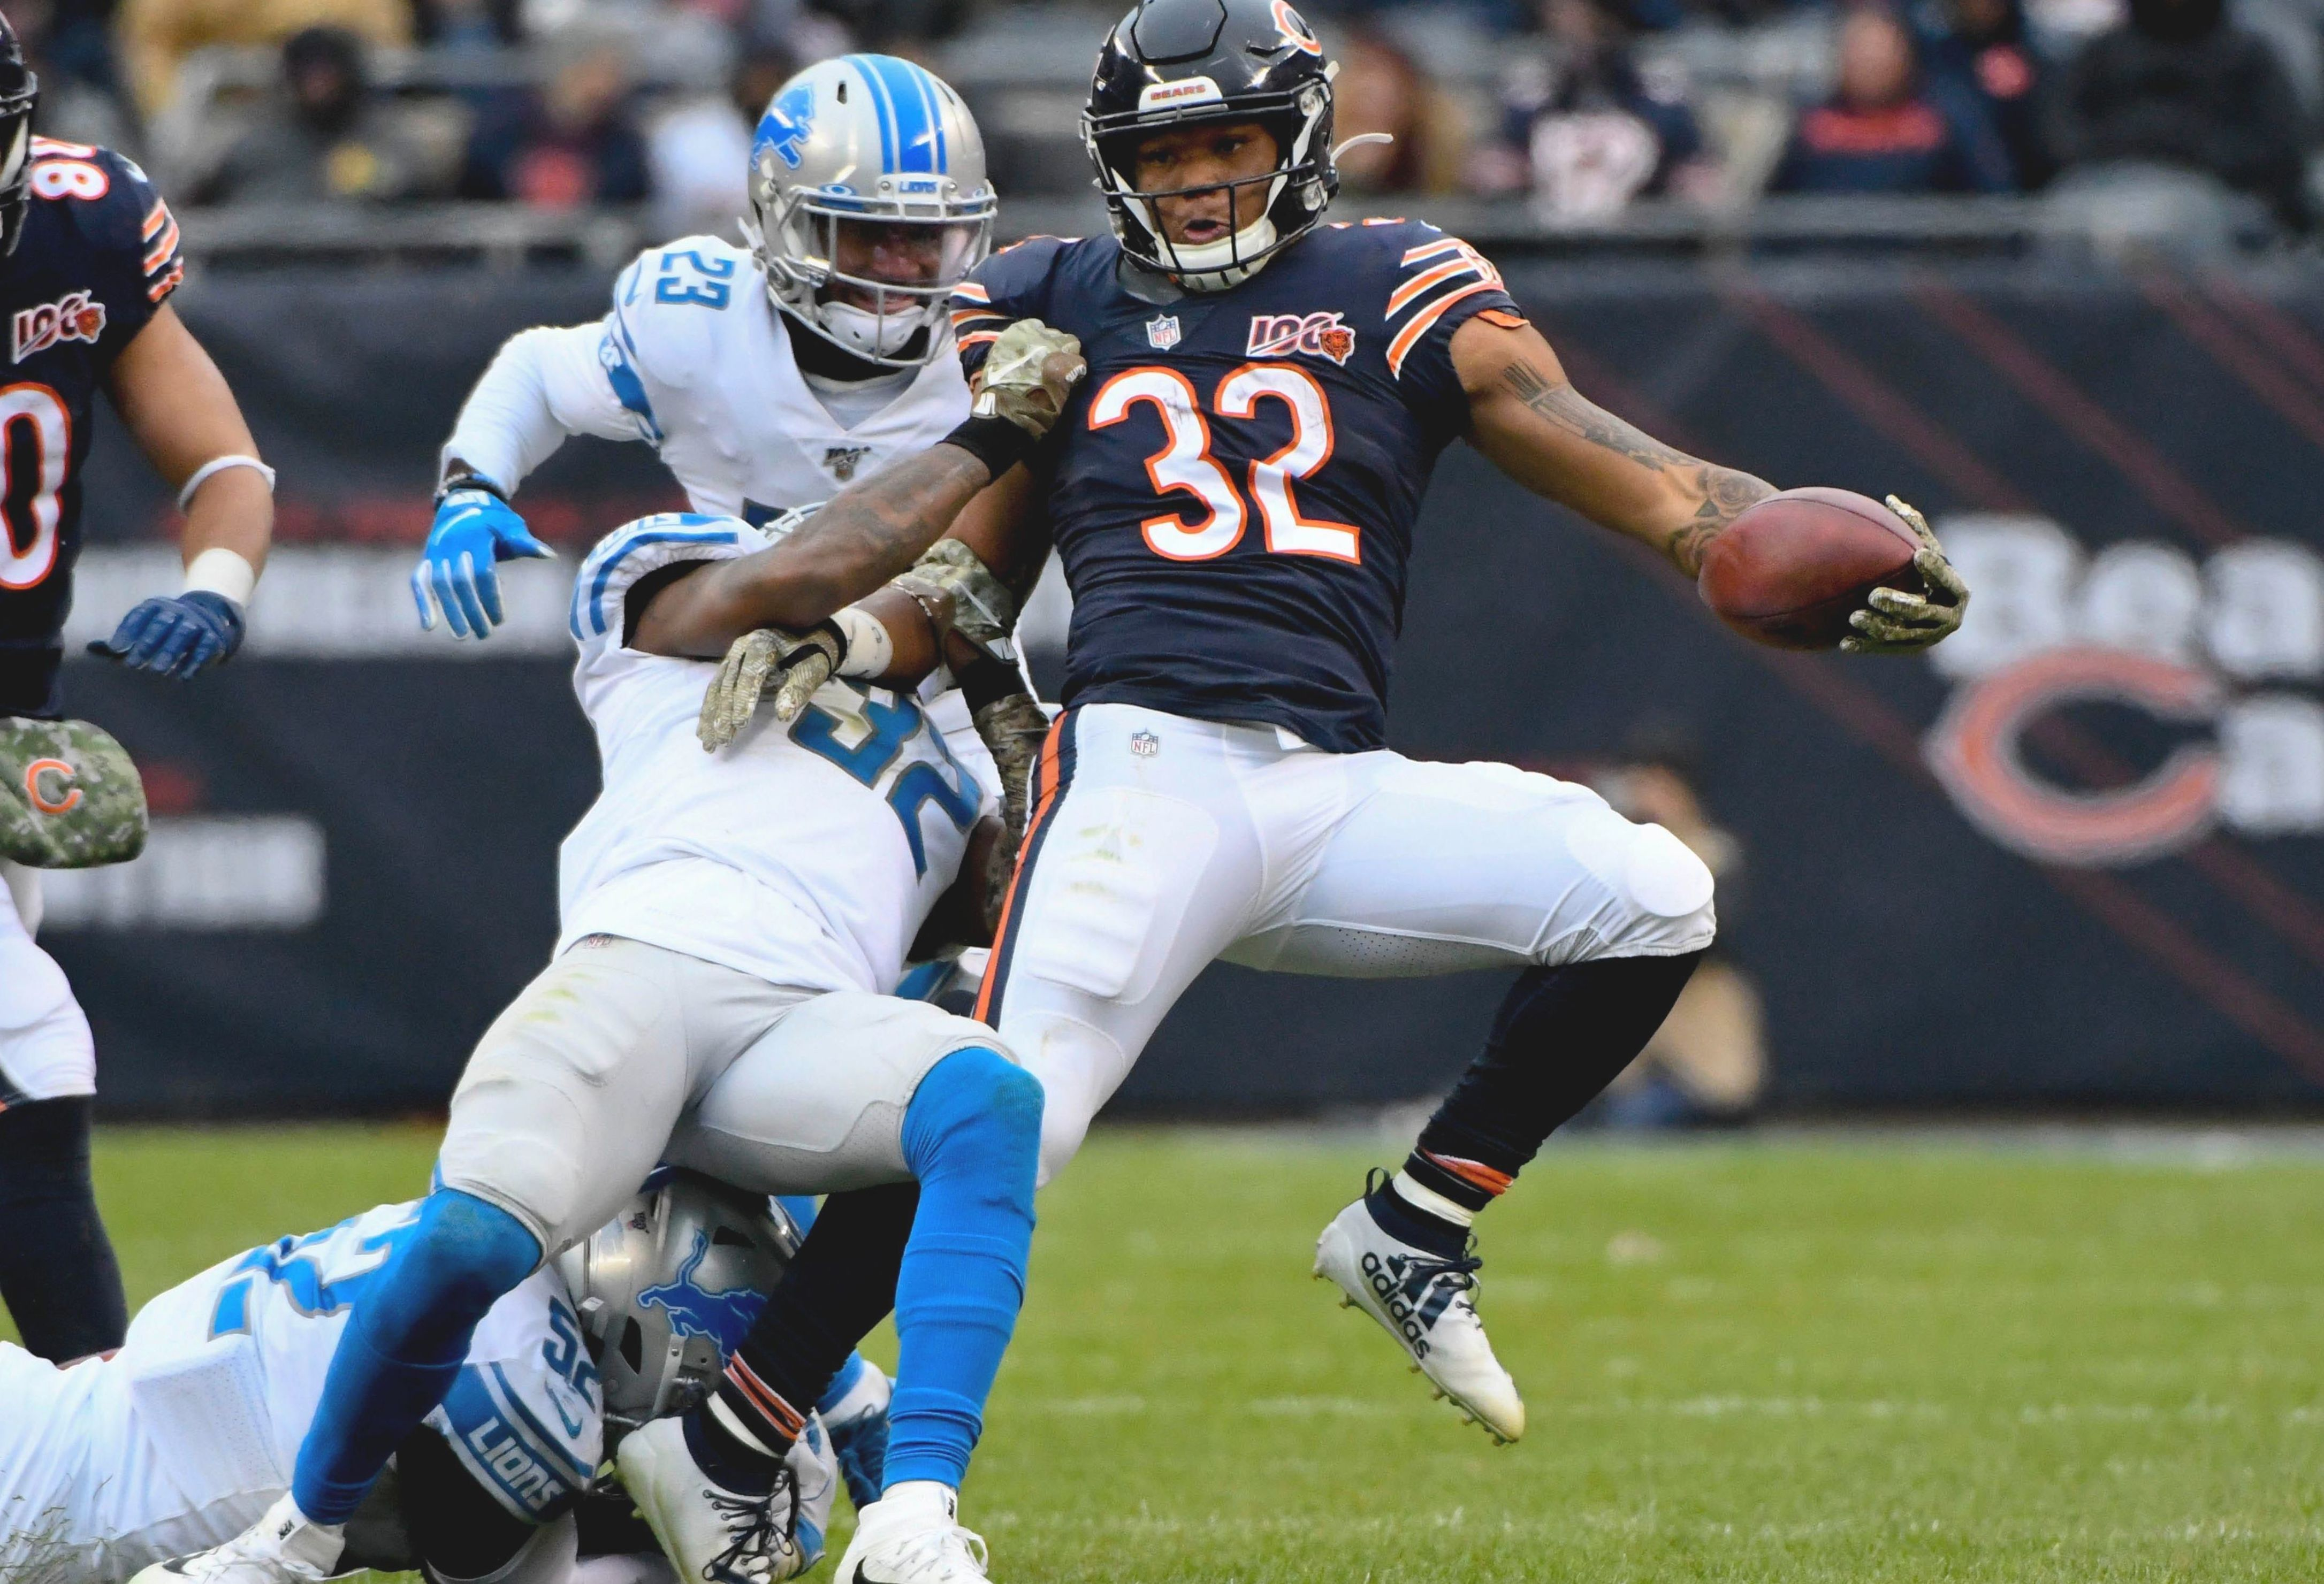 Pin By Shadrach On Thanksgiving Games In 2020 Nfl Thanksgiving Chicago Bears Nfl